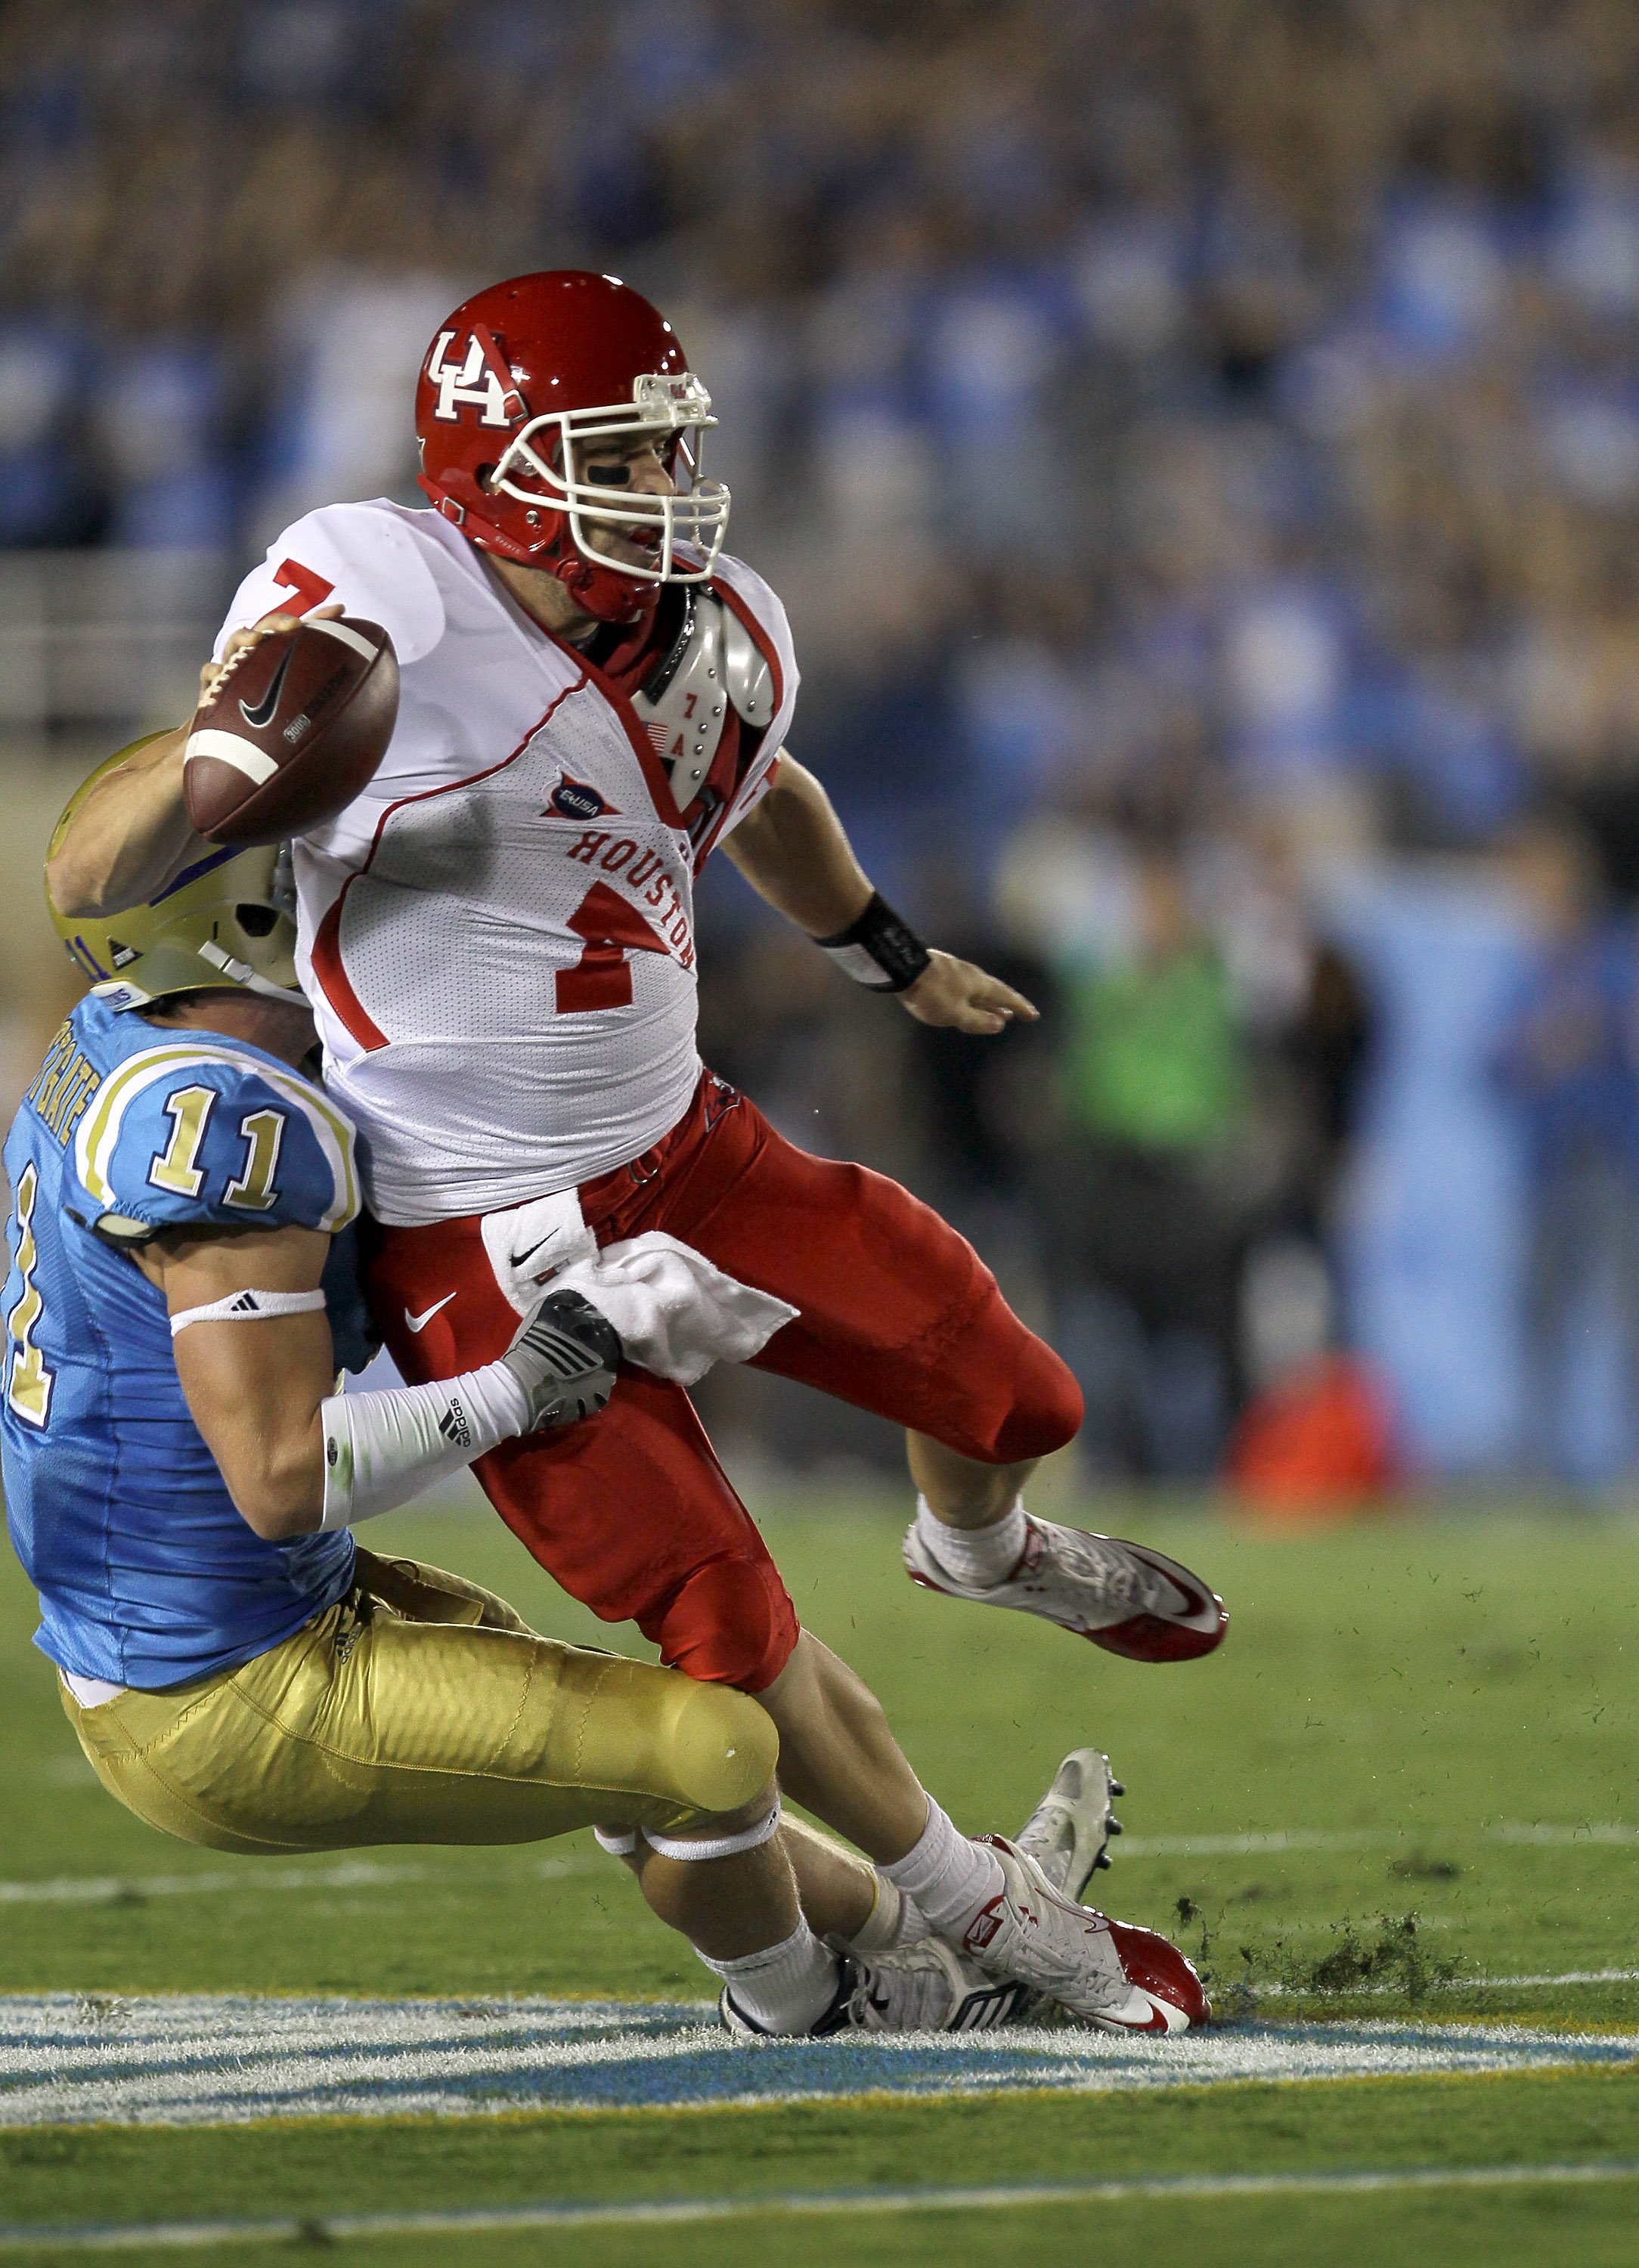 PASADENA, CA - SEPTEMBER 18:  Quarterback Case Keenum #7 of the Houston Cougars is tied up by linebacker Sean Westgate #11 of the UCLA Bruins at the Rose Bowl on September 18, 2010 in Pasadena, California.  (Photo by Stephen Dunn/Getty Images)